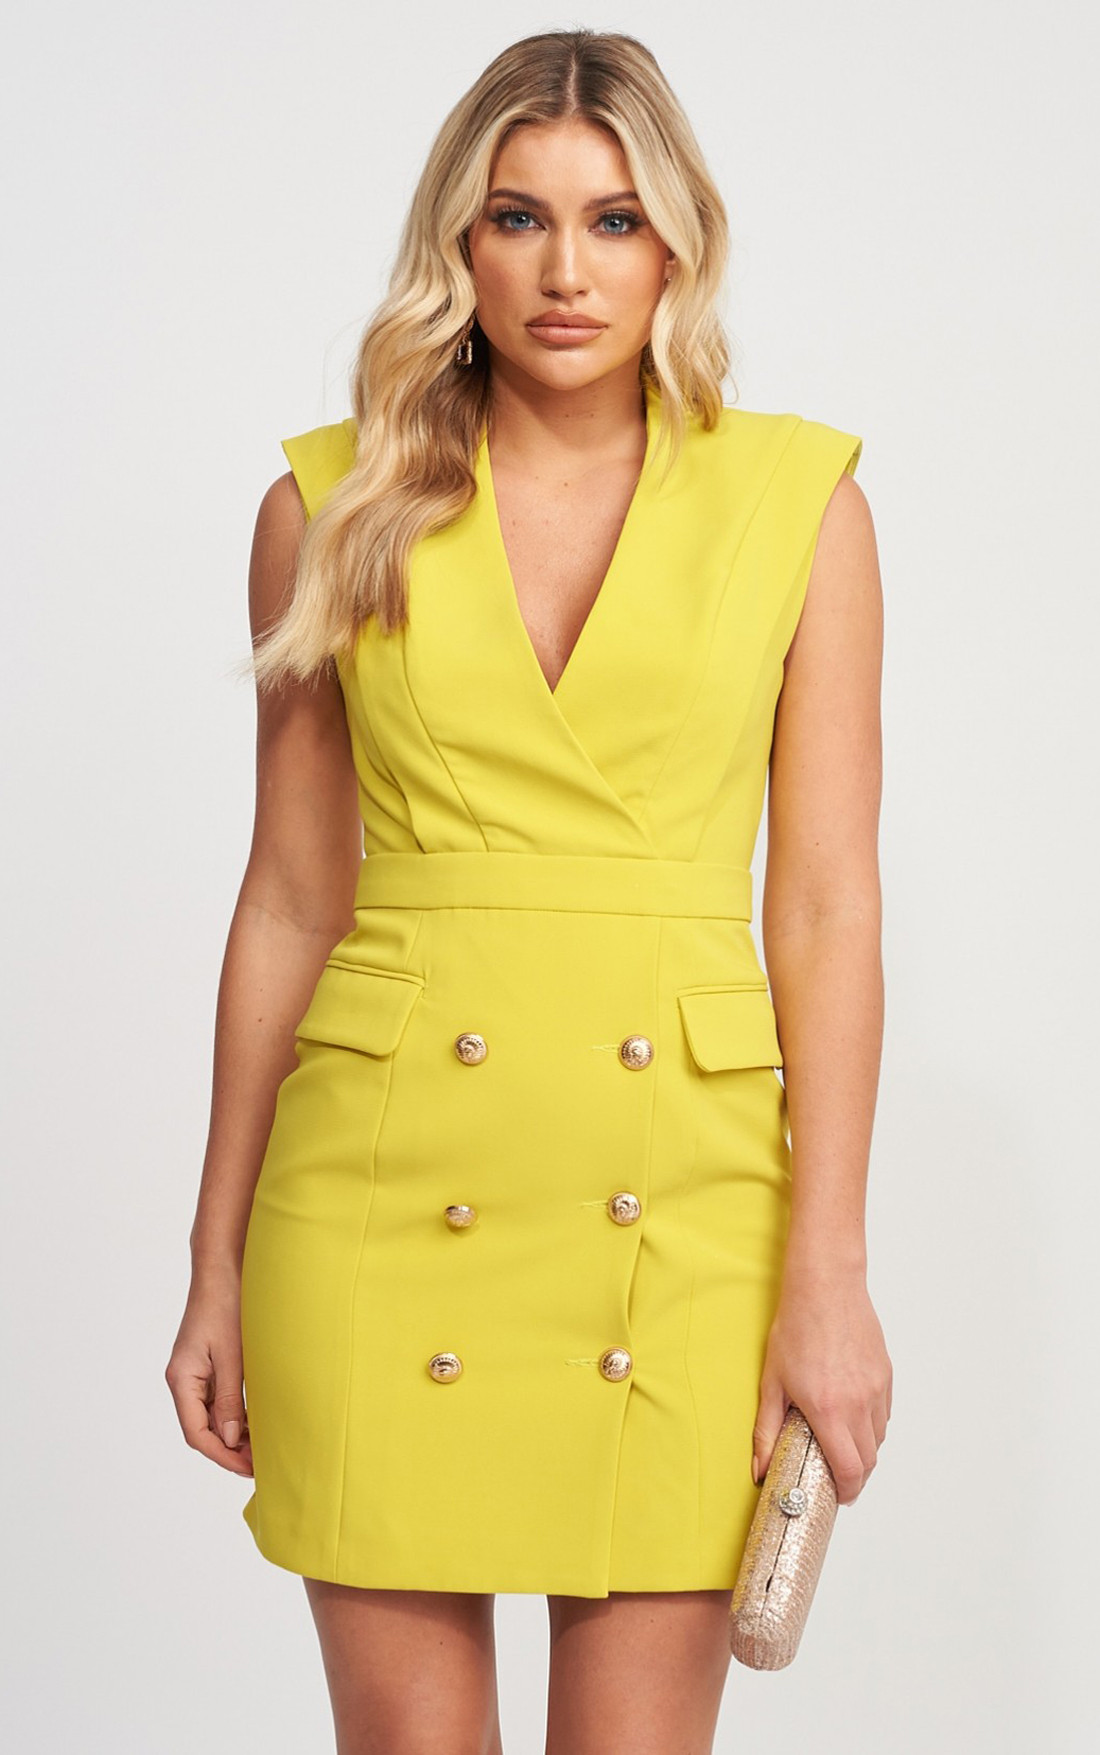 Forever Unique - Maddy Lime Sleeveless Blazer Dress With Gold Button Detail (MN201155)